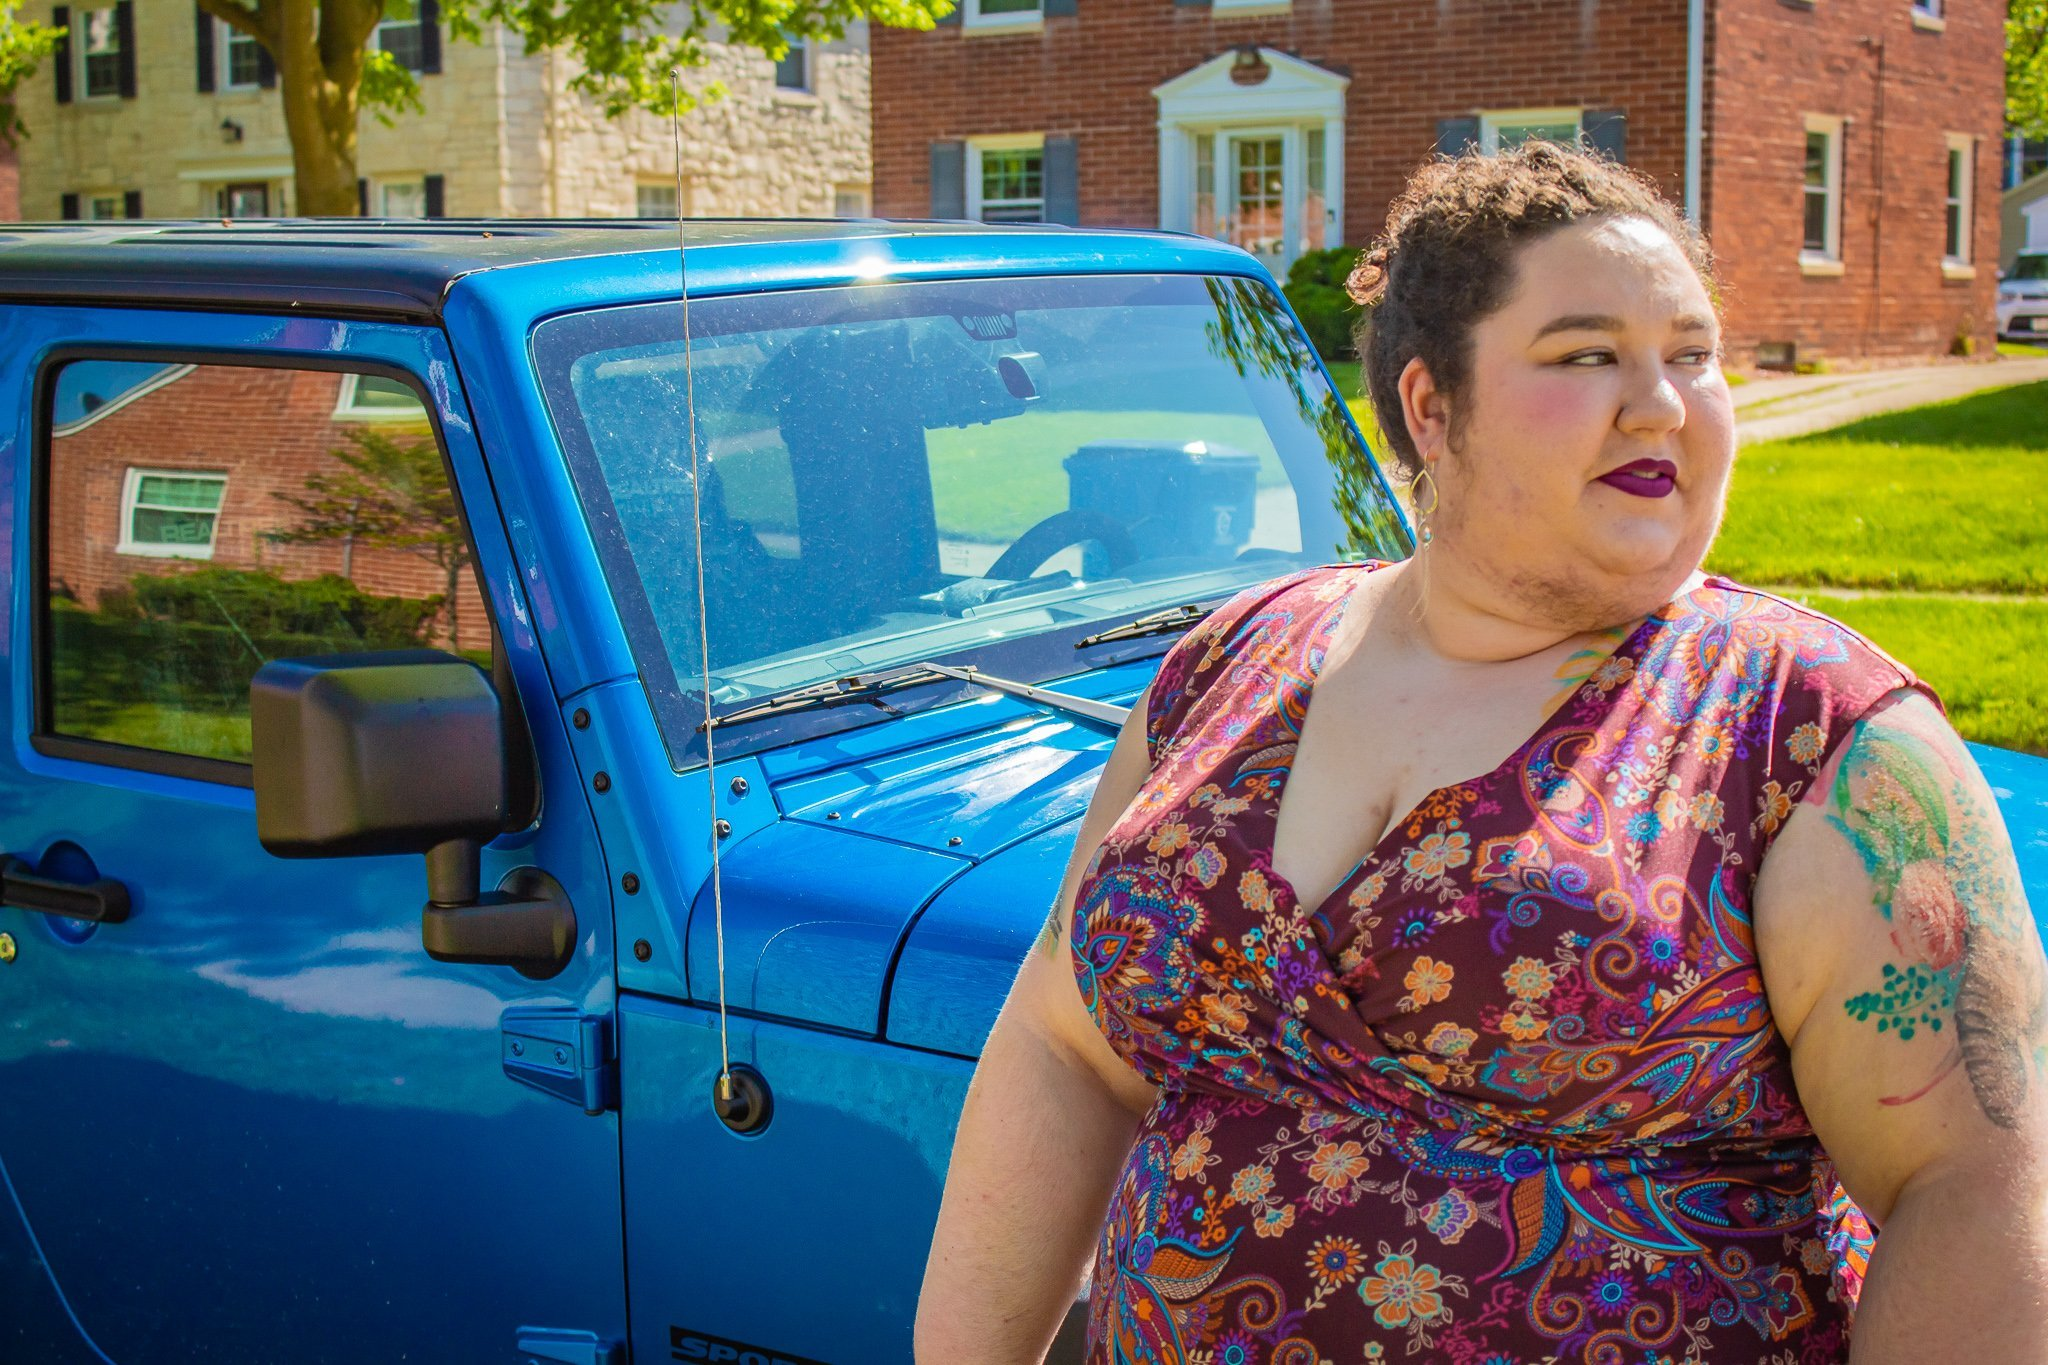 Chaya with her hair up, leaning against a blue jeep